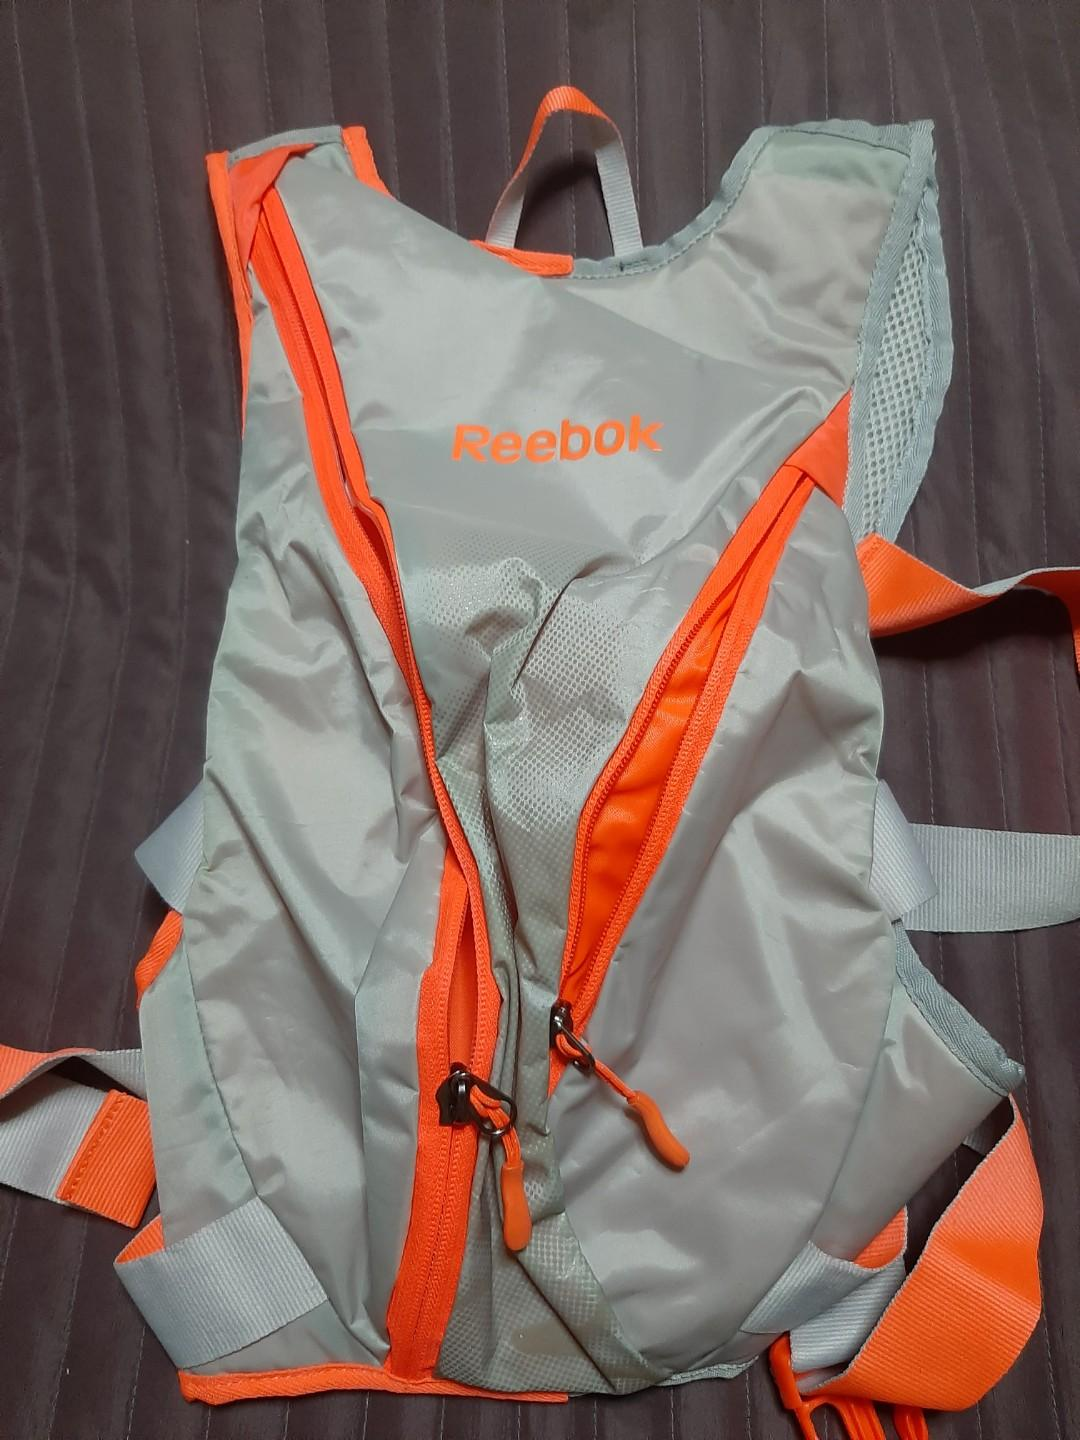 Reebok running/cycling vest backpack